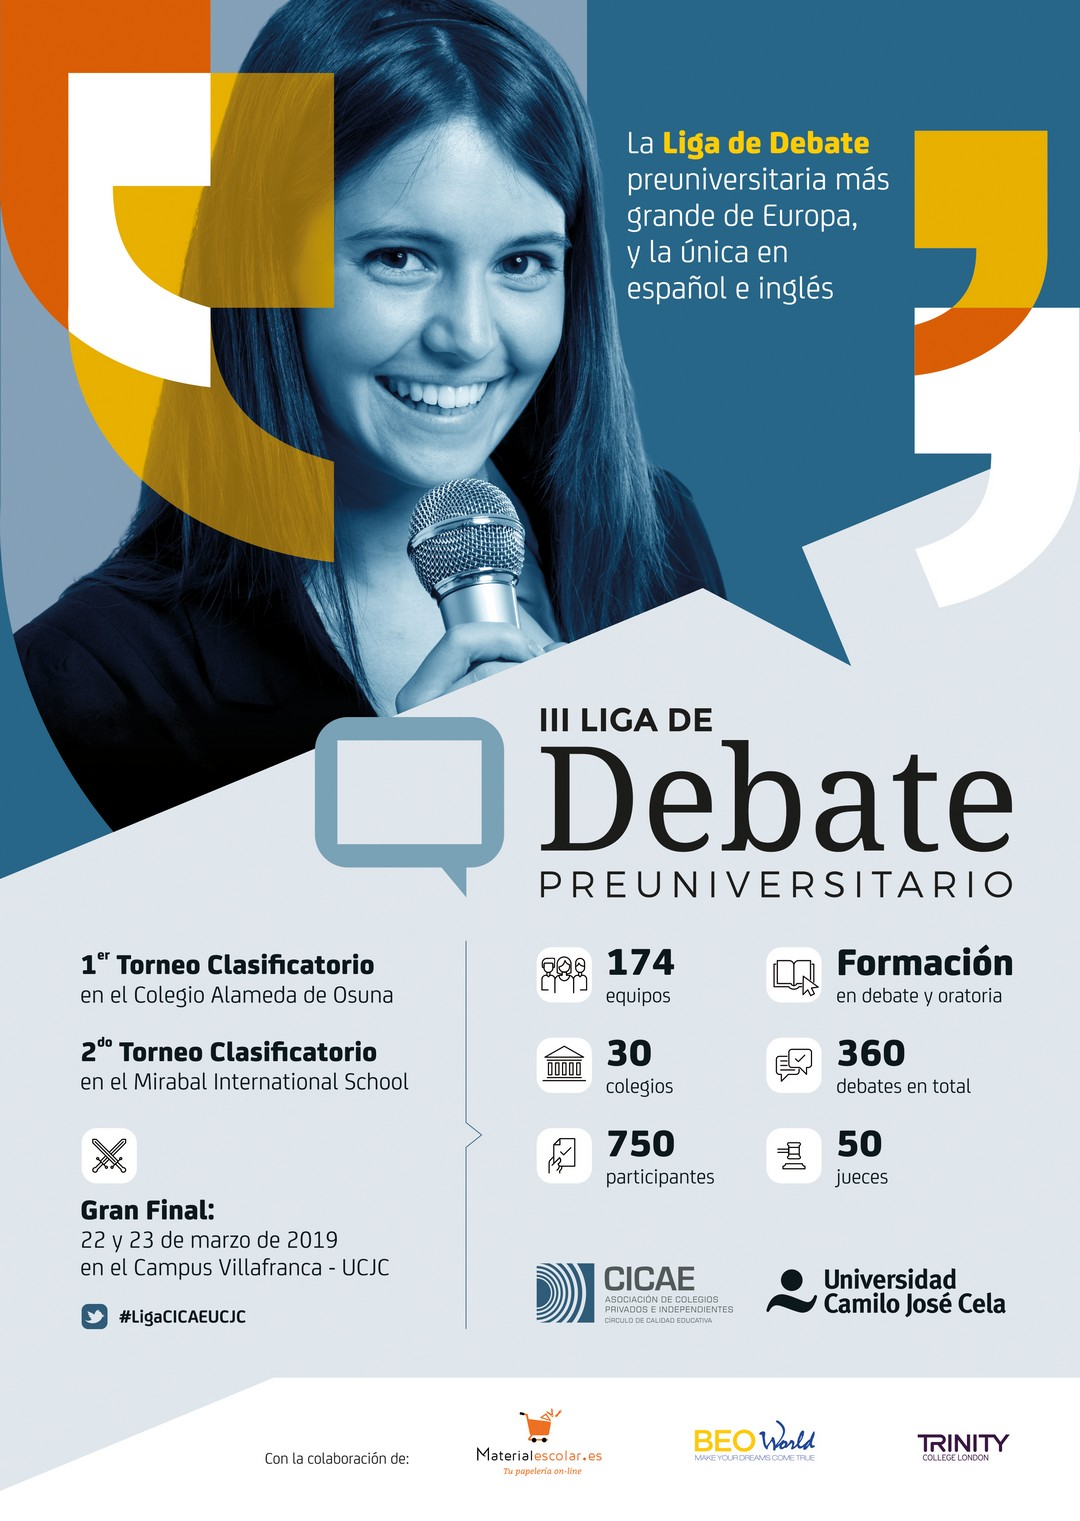 Celebramos Madrid final mayor liga debate preuniversitario Europa